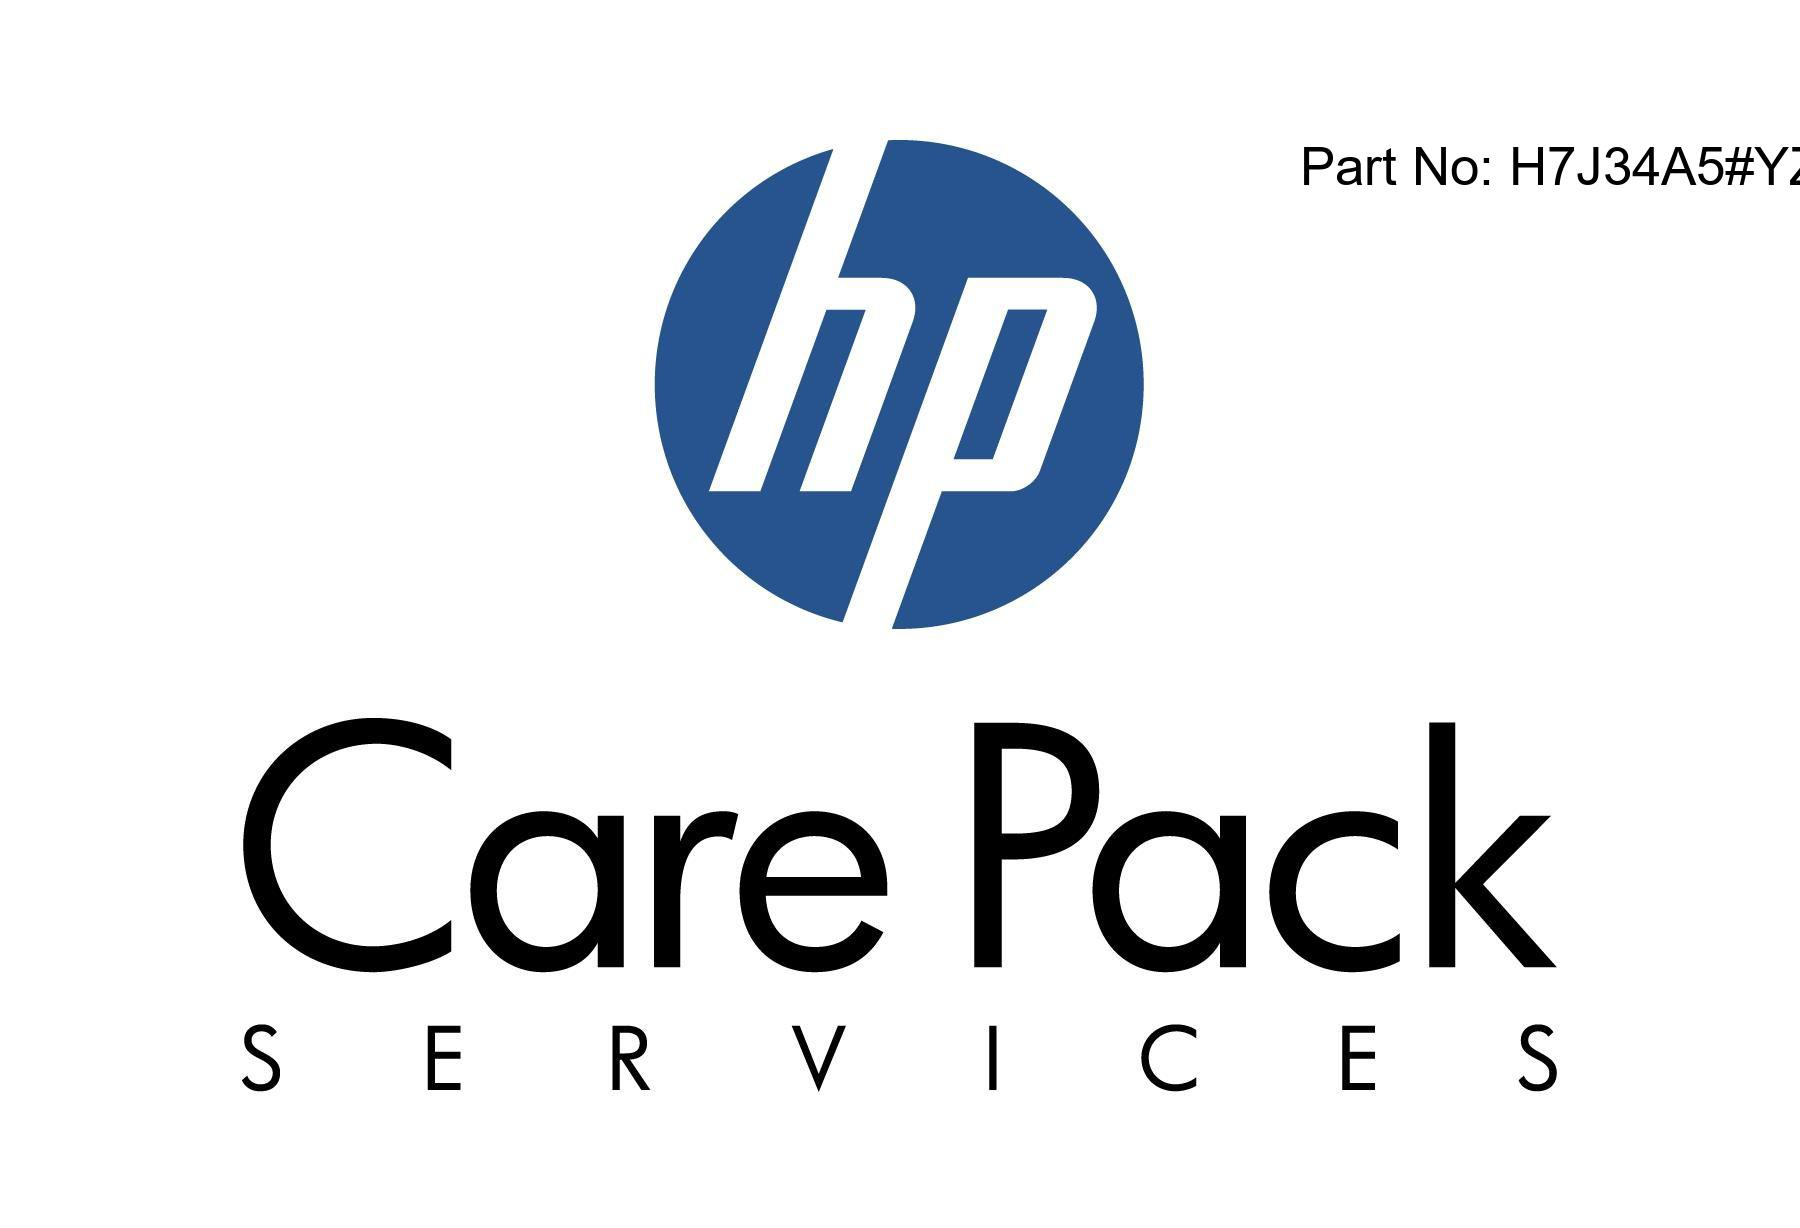 Foundation Care Software Support 24x7 - Technical support - for HPE 3PAR 8440 Operating System Suite - 8 drives - phone consulting - 5 years - 24x7 - response time: 2 h